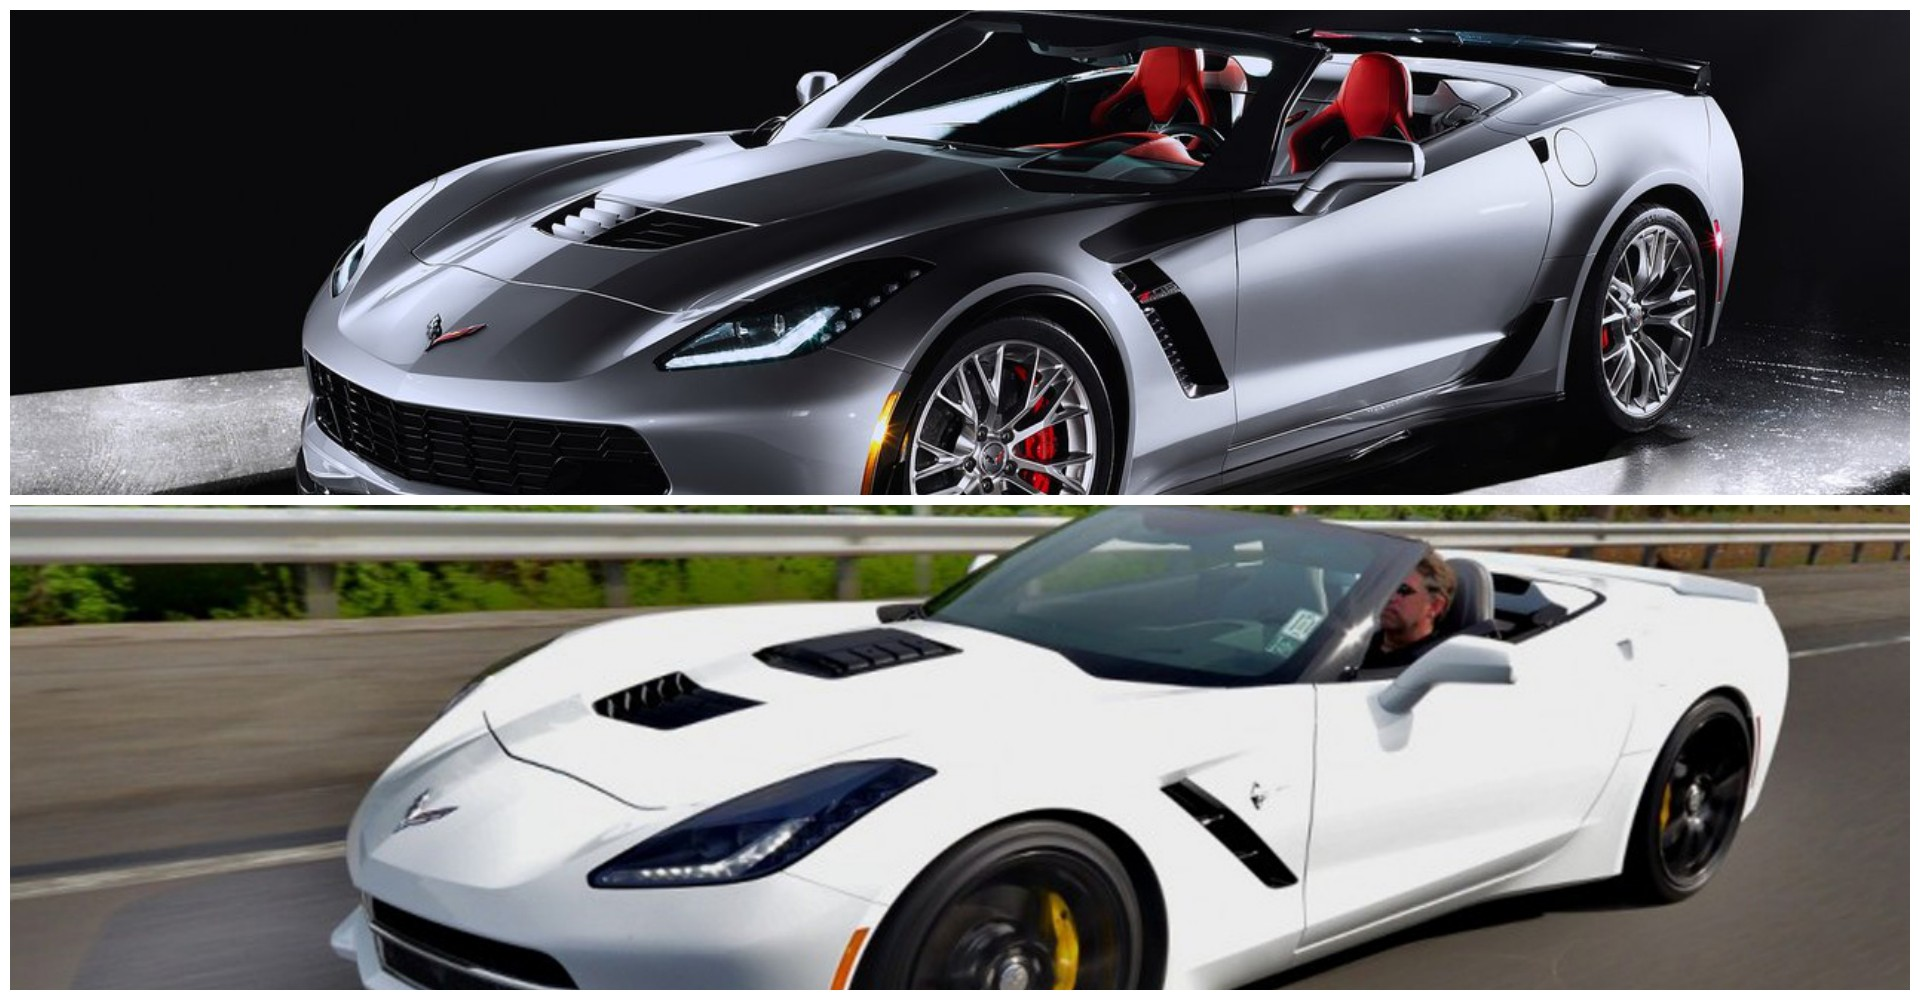 2015 chevrolet corvette z06 vs 2014 callaway corvette sc627 which. Cars Review. Best American Auto & Cars Review